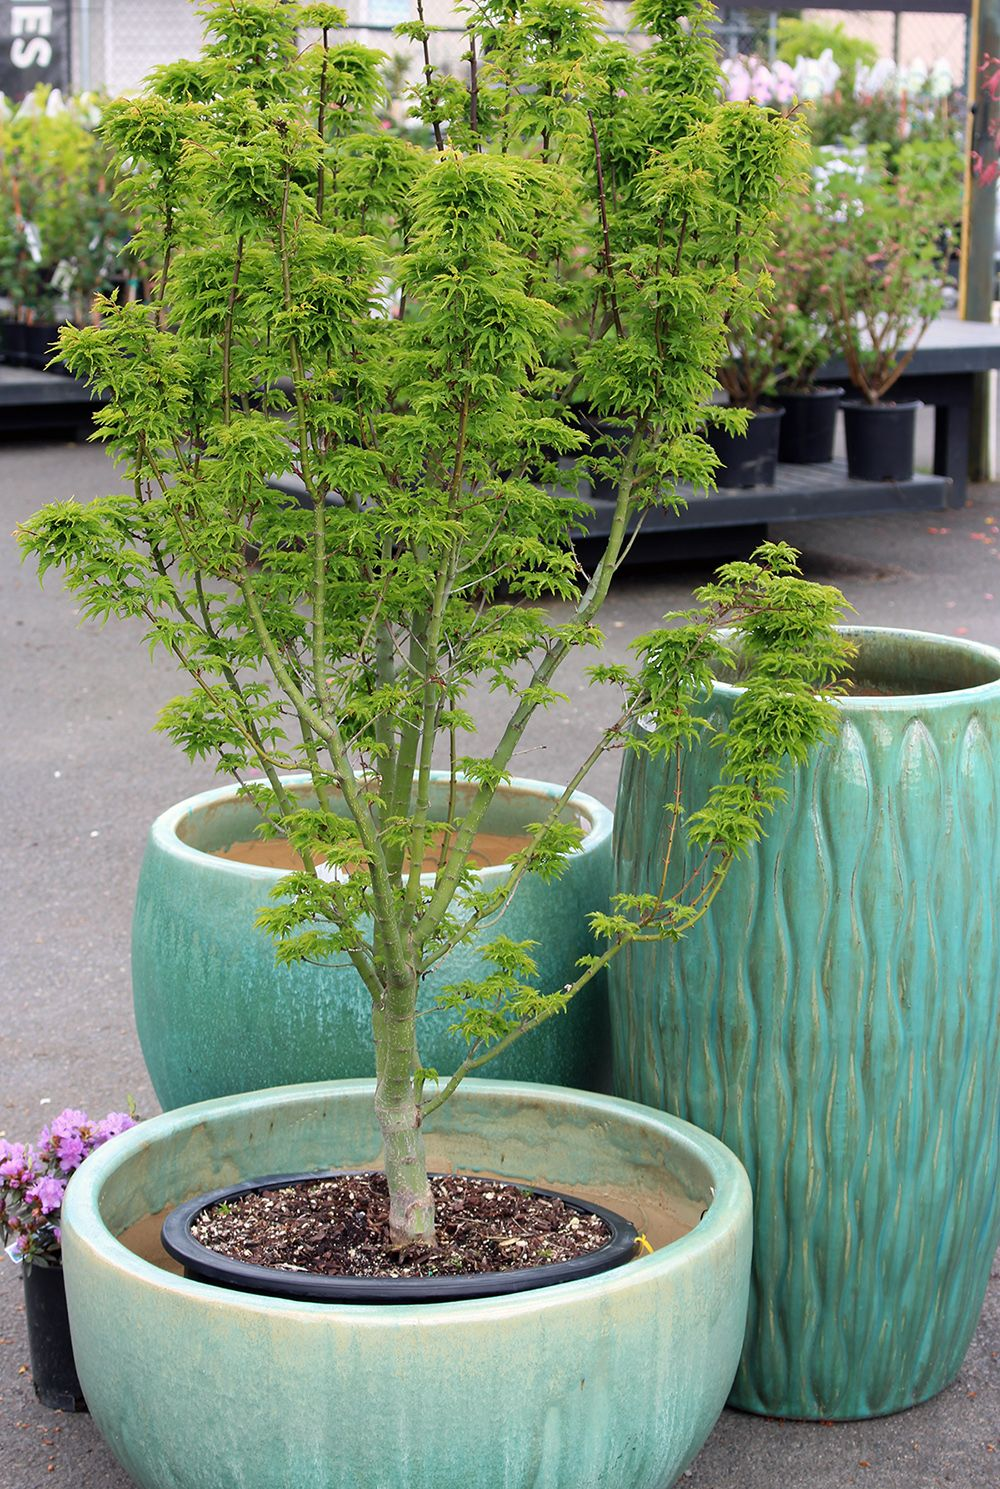 Lions Head Japanese Maple Is An Upright Compact And Slow Growing